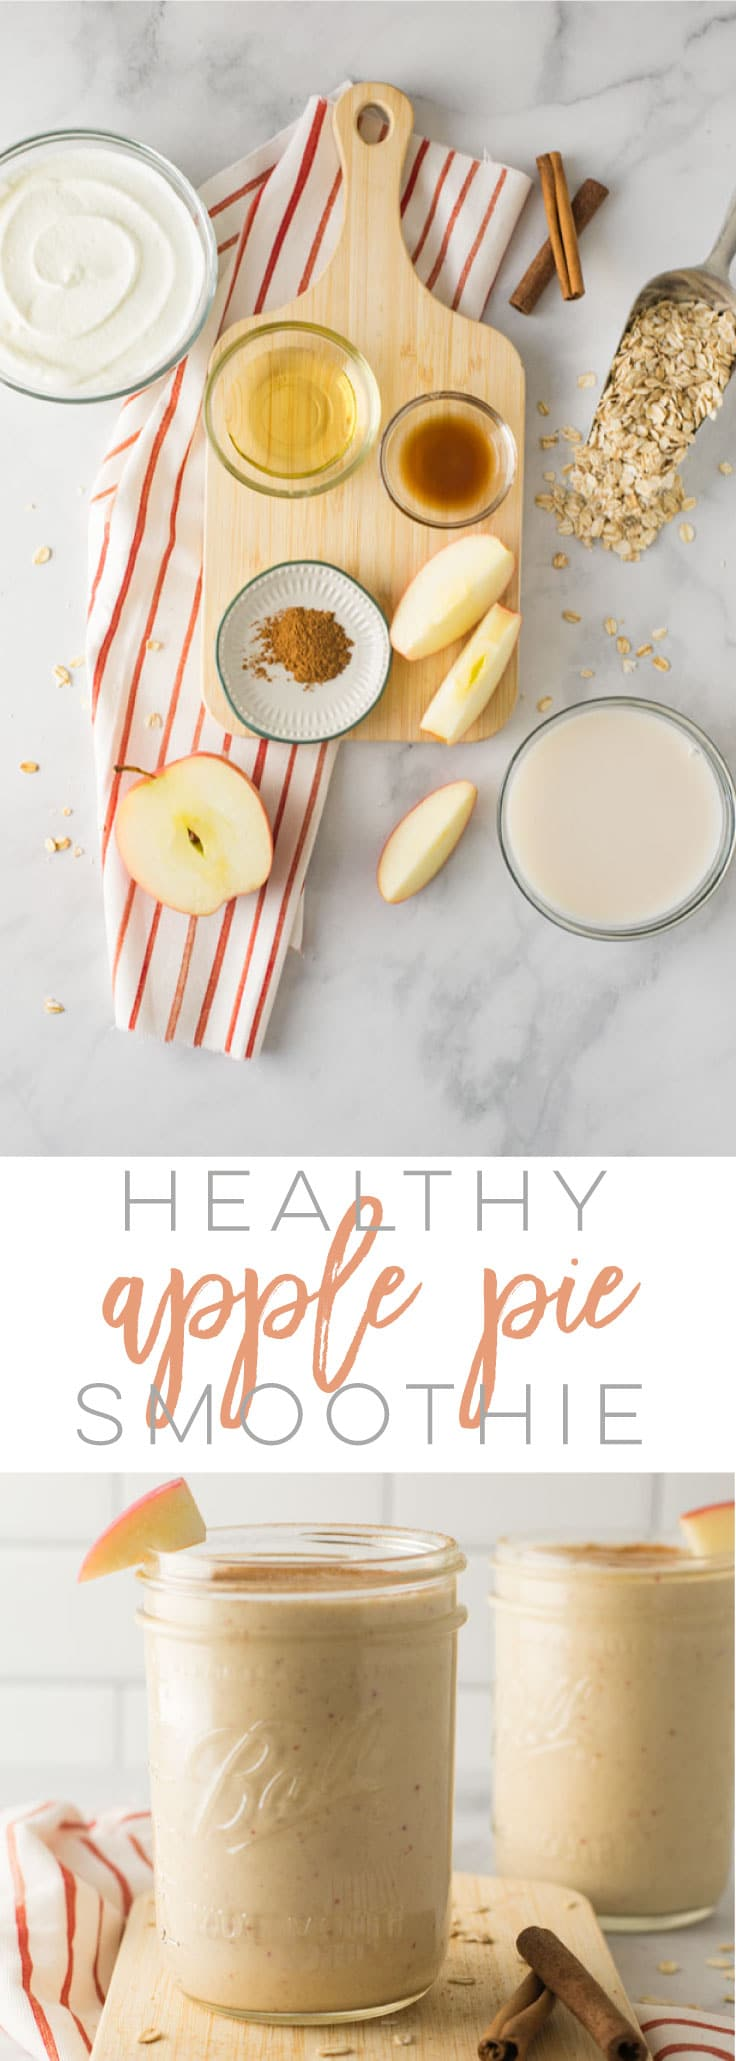 Healthy Apple Pie Smoothie -- All the flavors you love in an apple pie blended together in this healthy smoothie recipe. Only requires a handful of ingredients and takes just minutes to make! #breakfast #cleaneating #healthy #fall #recipes #smoothie | Mindful Avocado